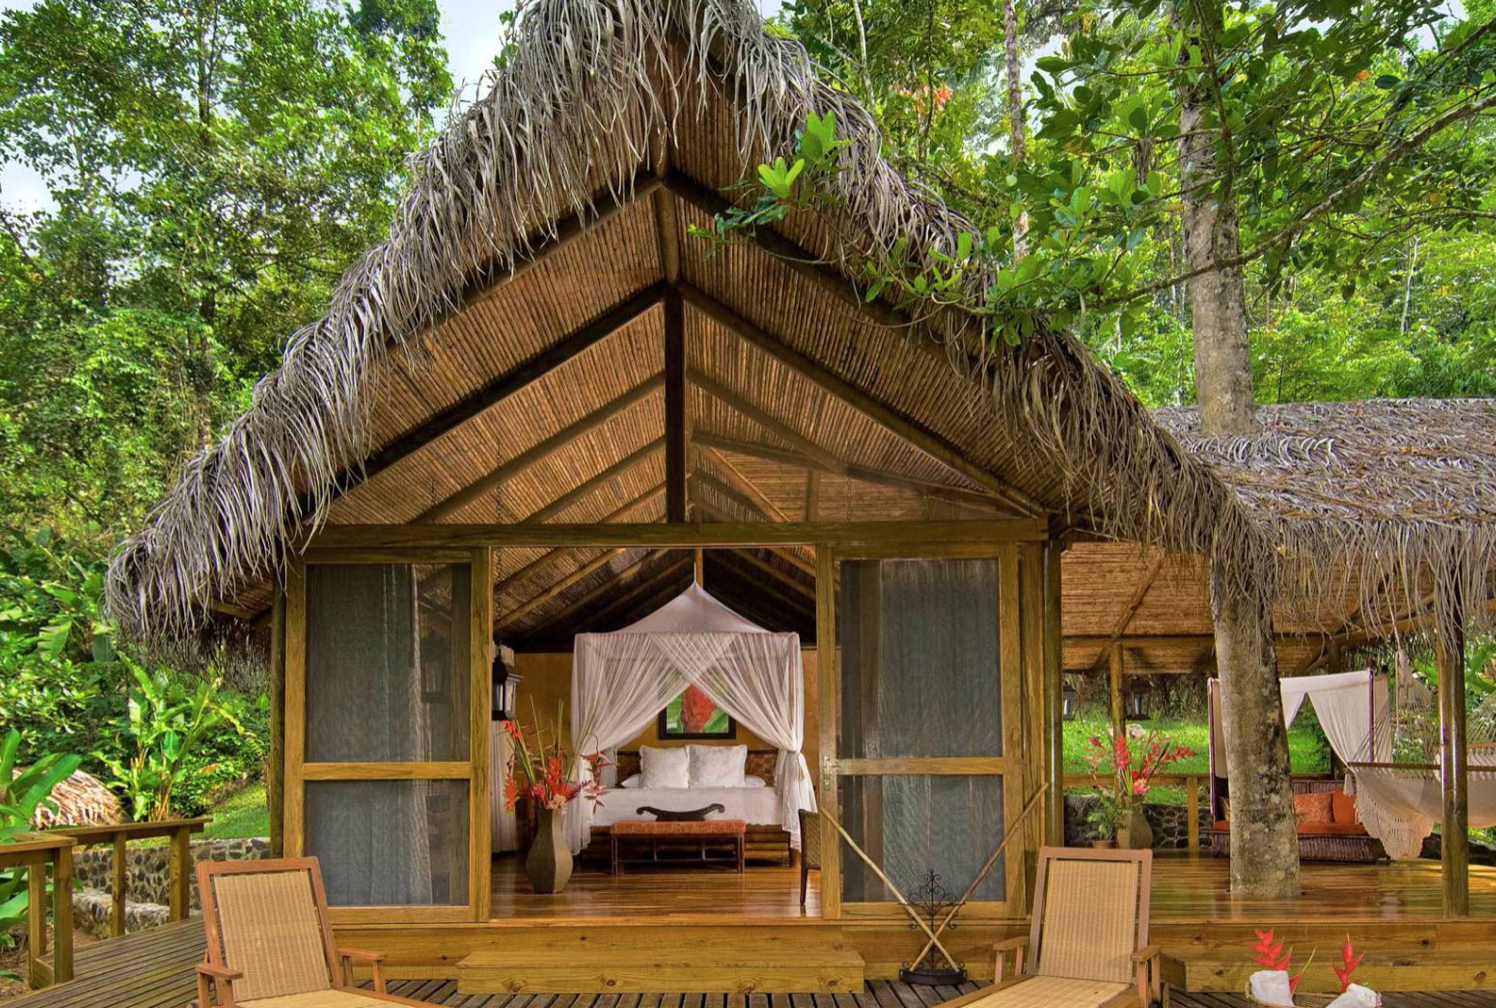 https://www.nationalgeographiclodges.com/lodges/central-america-caribbean/pacuare-jungle-lodge/